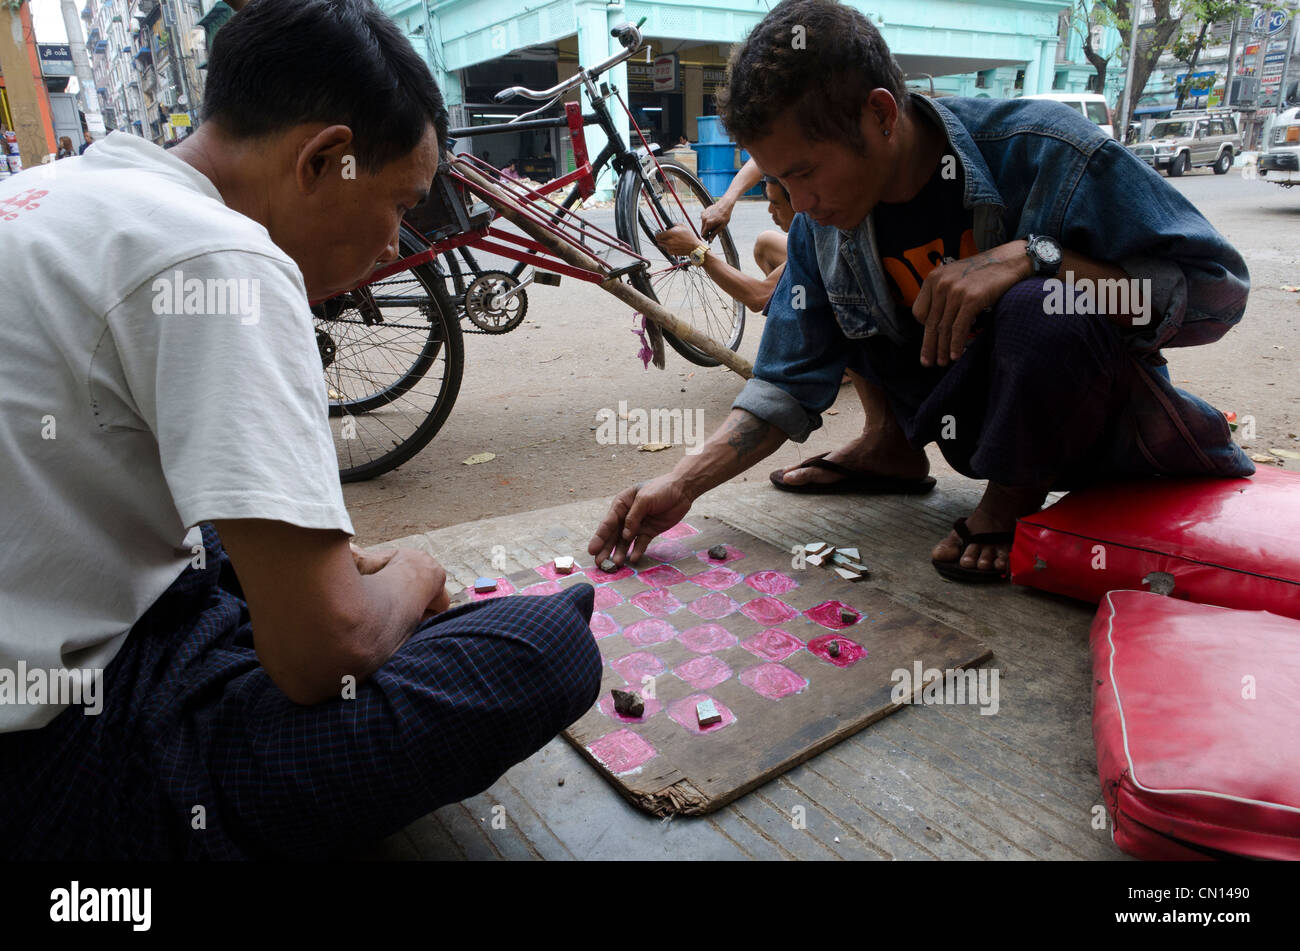 Trishaw drivers playing checkers in the streets of Yangon. Myanmar. Stock Photo